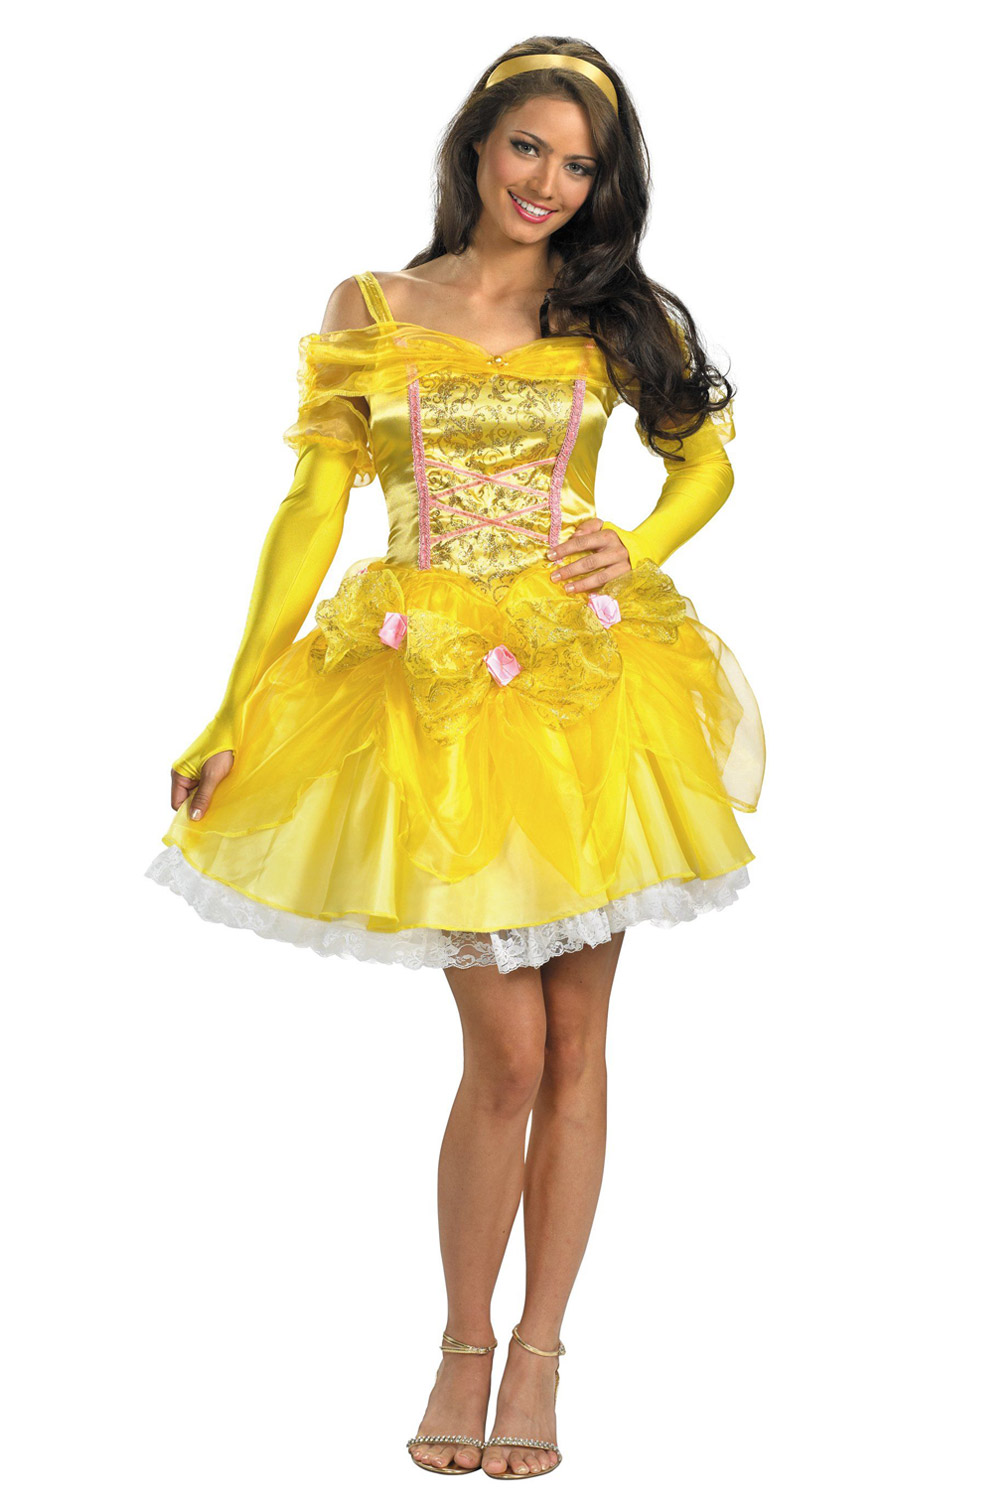 sc 1 st  Pure Costumes & Disney Princess Sassy Belle Adult Costume - PureCostumes.com